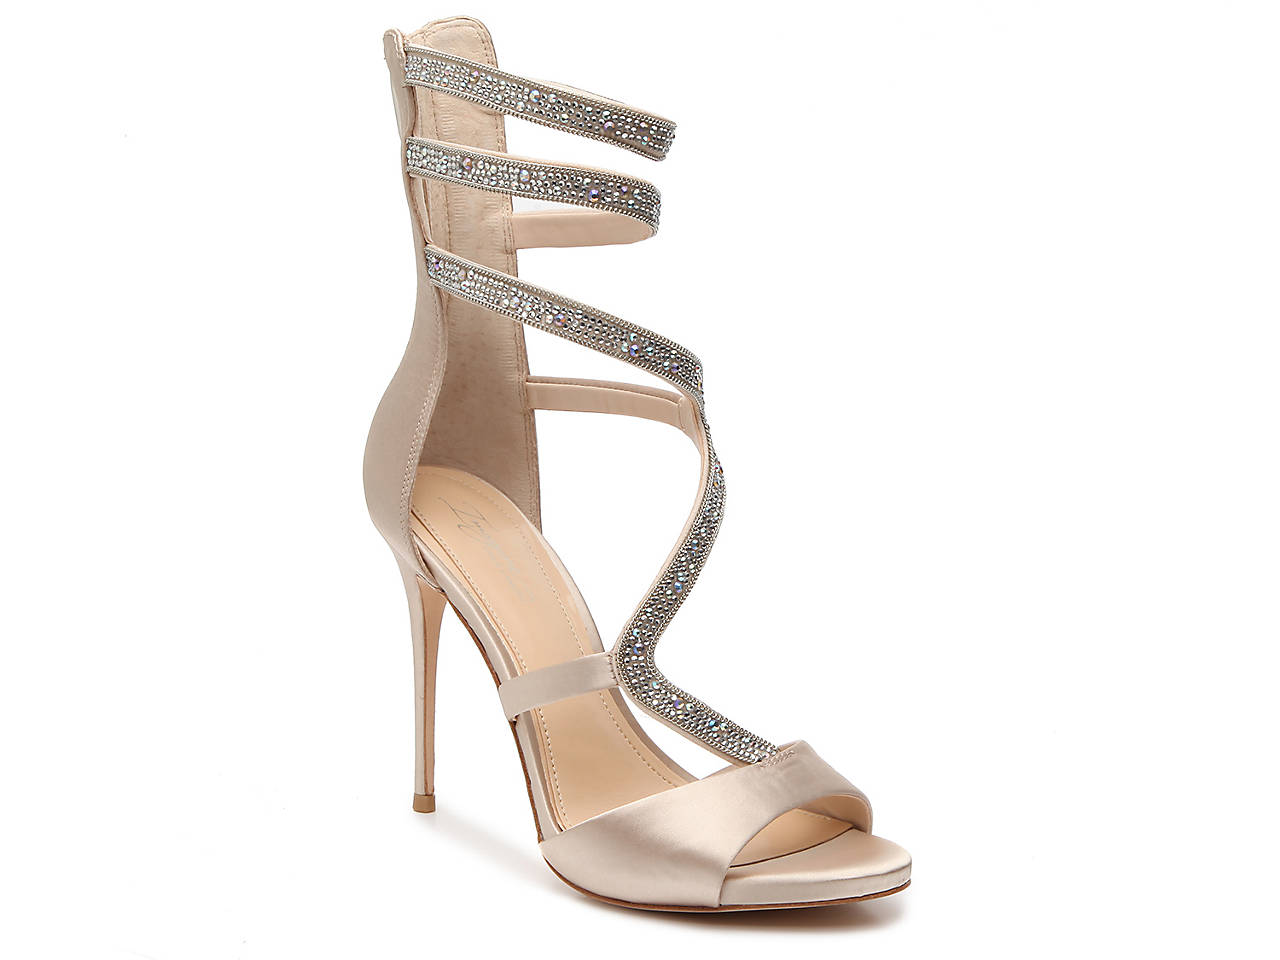 29eb23ab8b54b7 Imagine Vince Camuto Dafny Sandal Women s Shoes